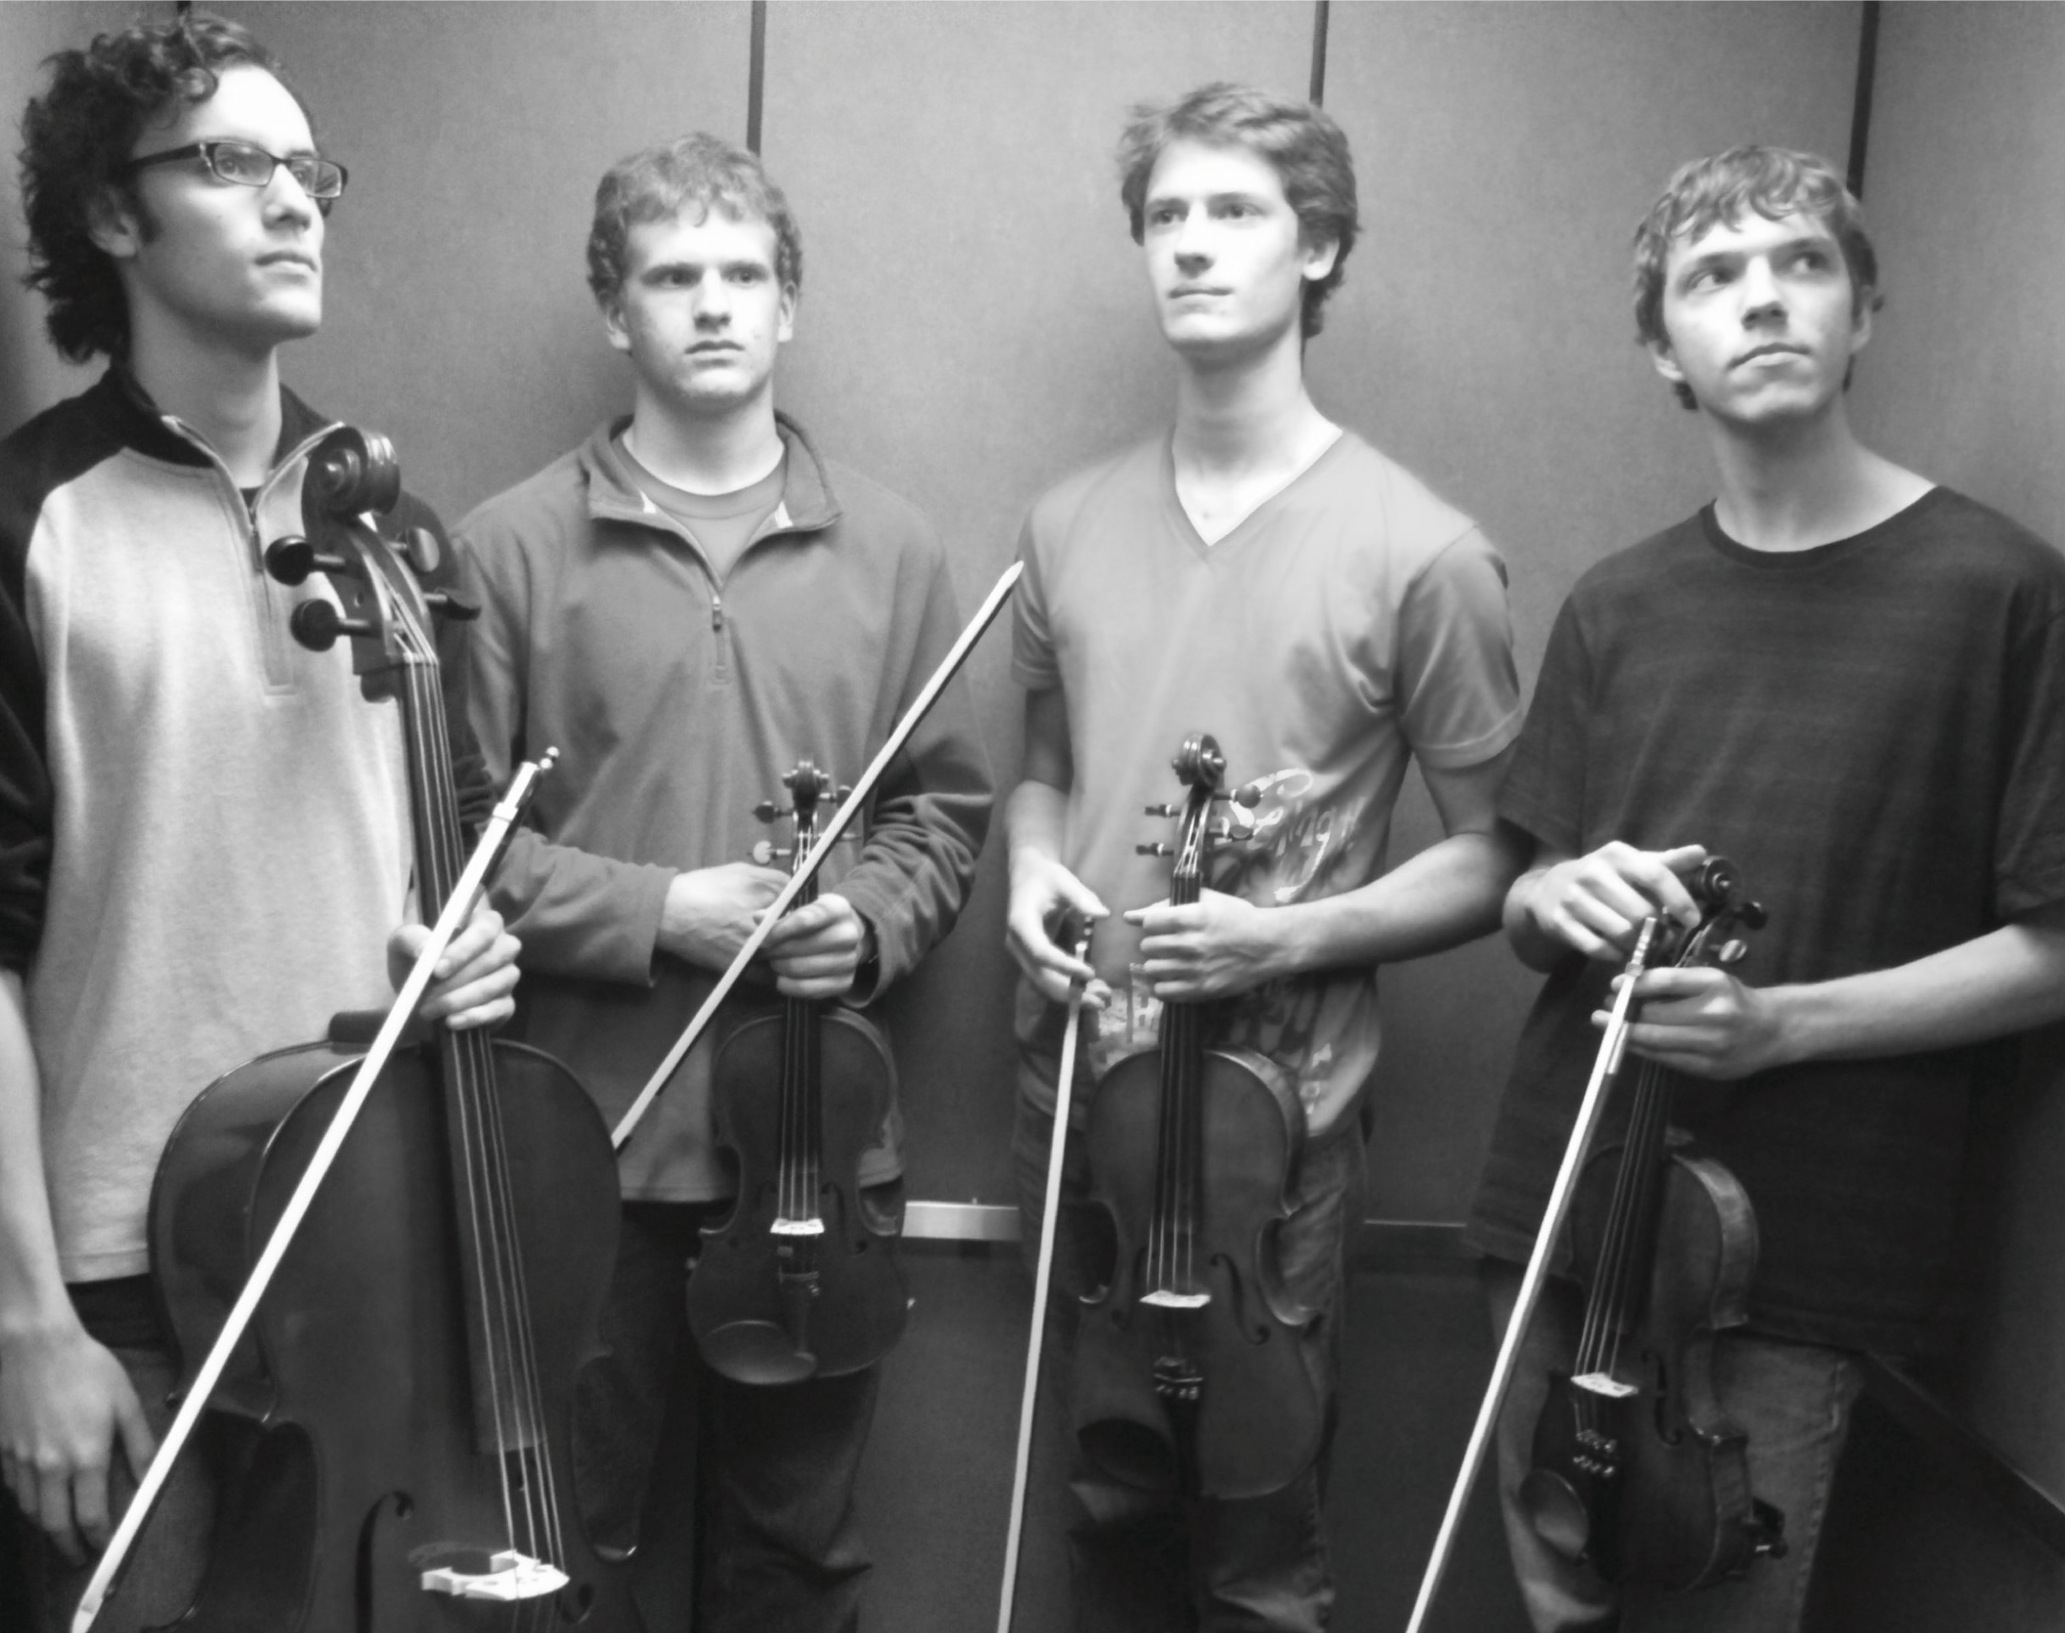 The Kool Cats Quartet bring their instruments into the Kratz elevator for a performance